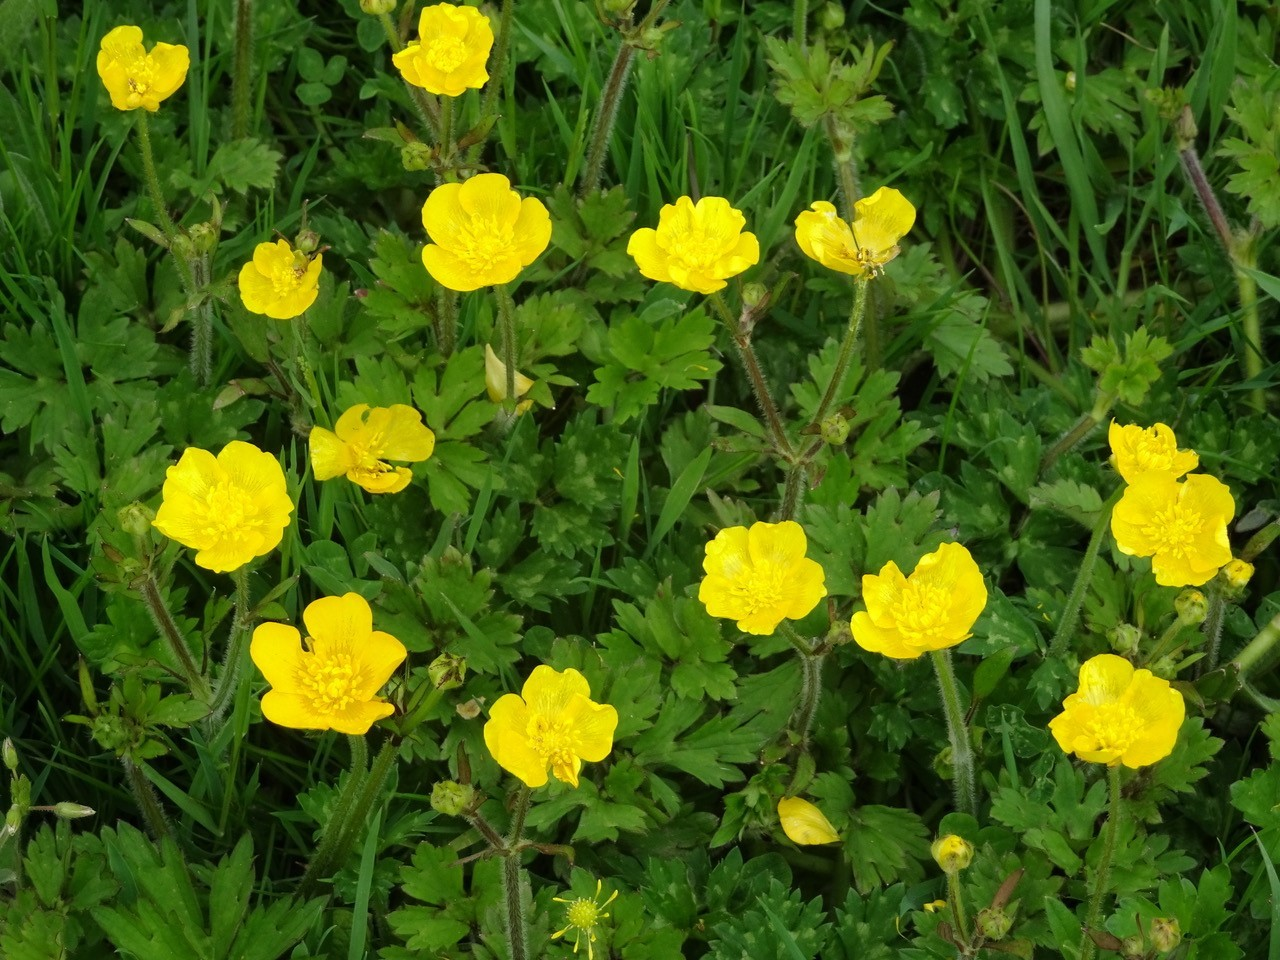 Creeping buttercup (Ranunculus repens), Upton Country Park.